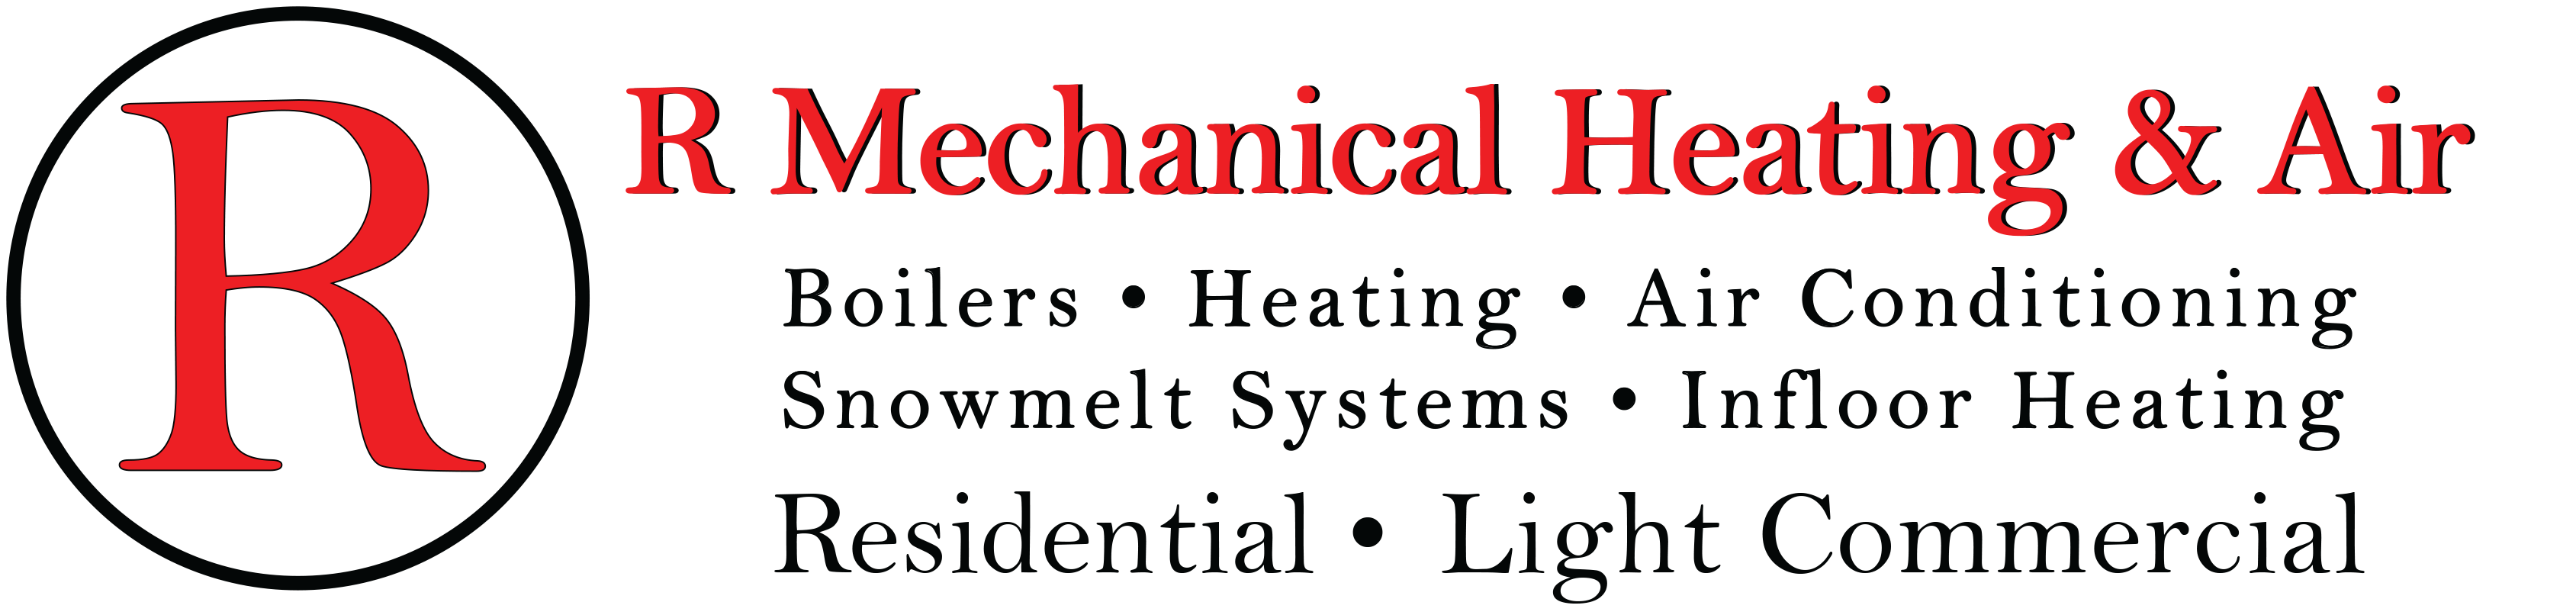 R Mechanical Heating & Air